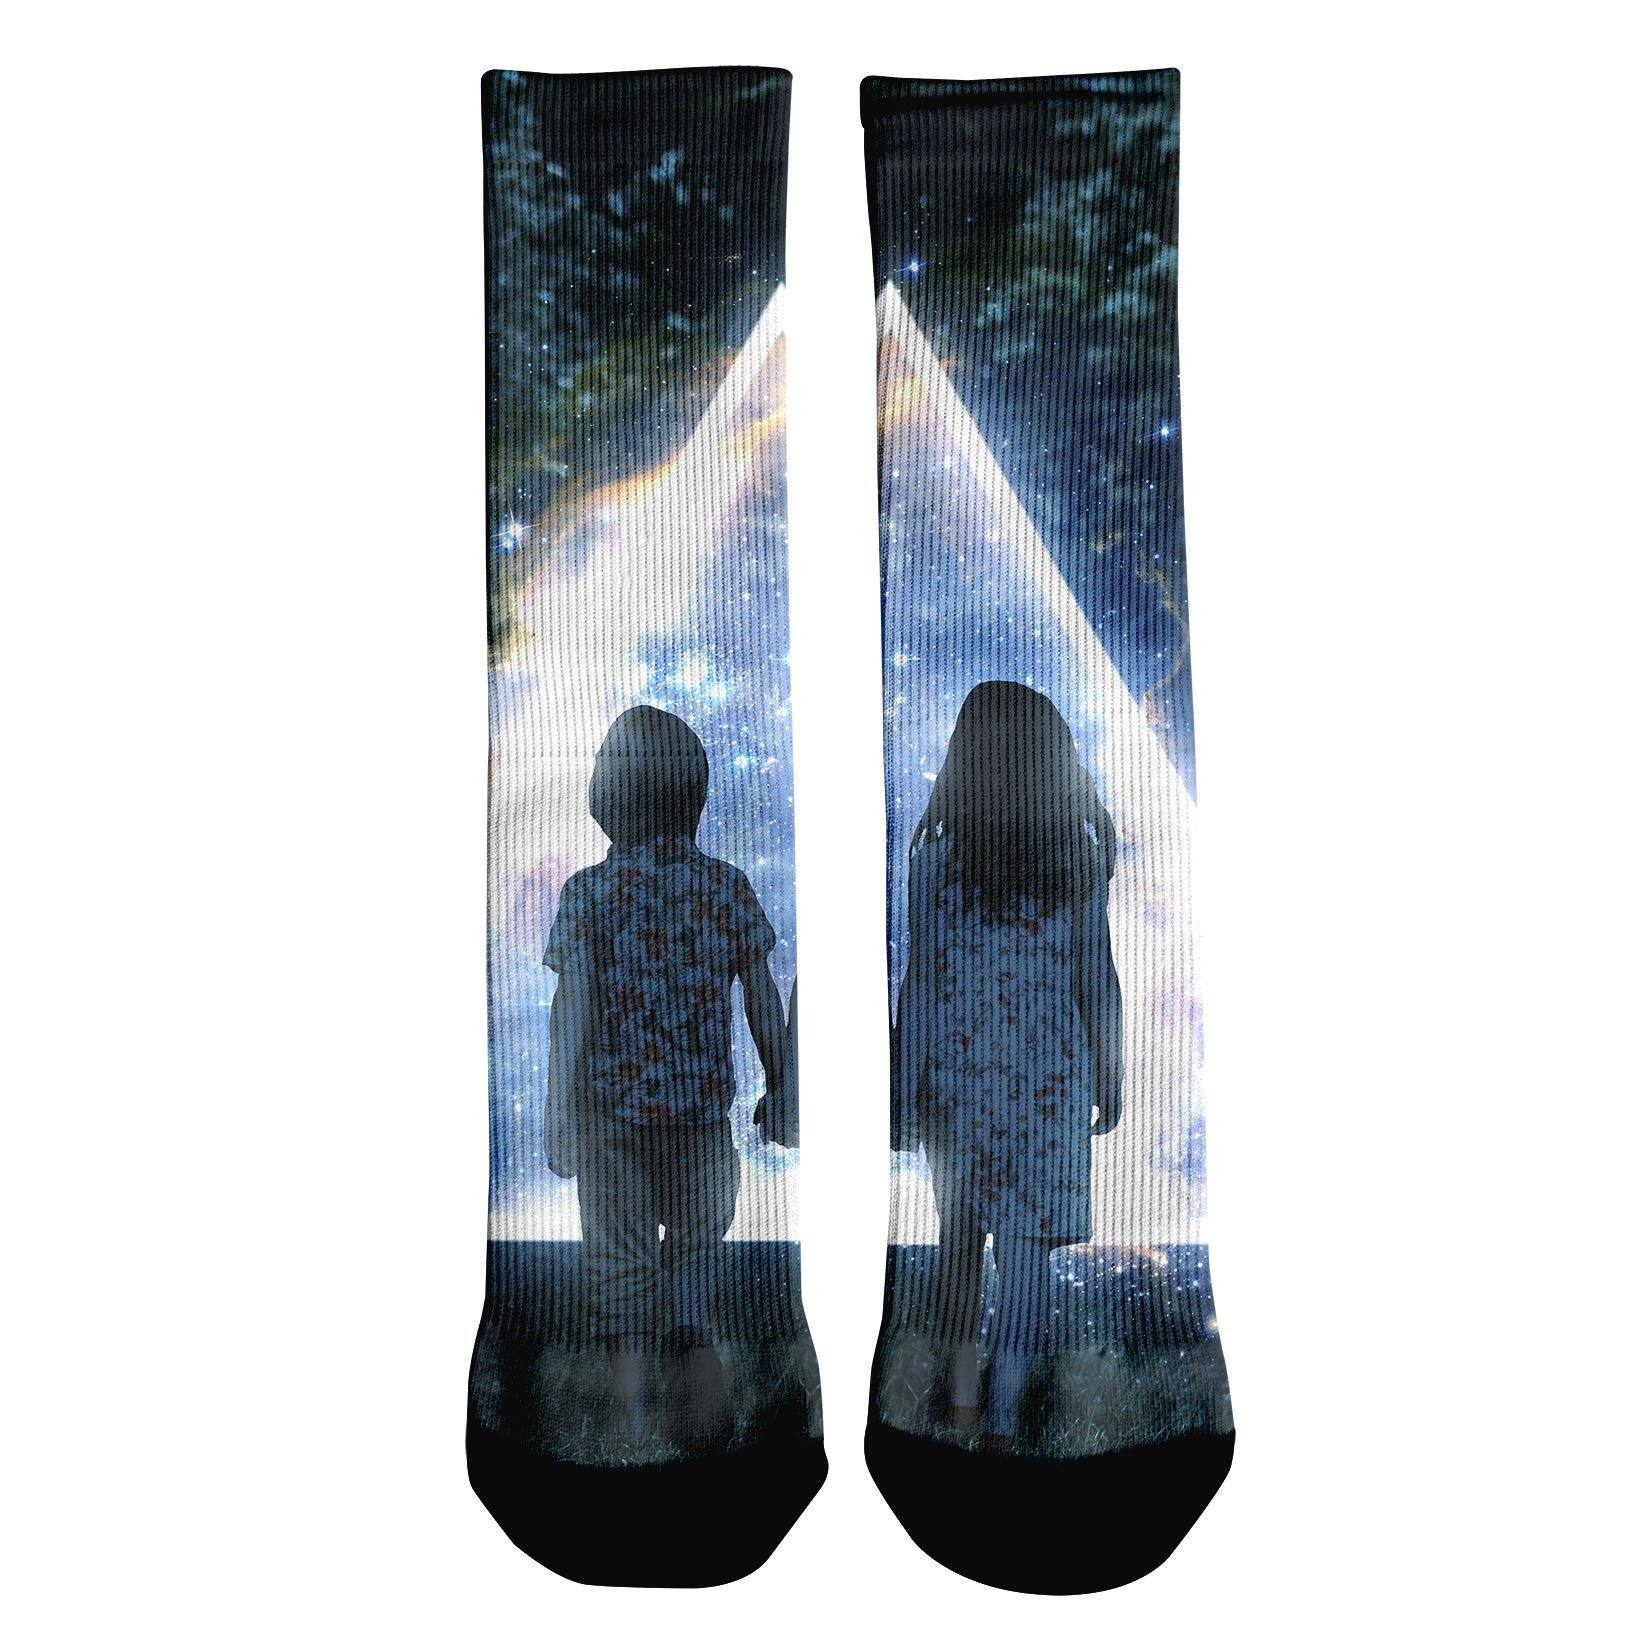 Together Crew Socks